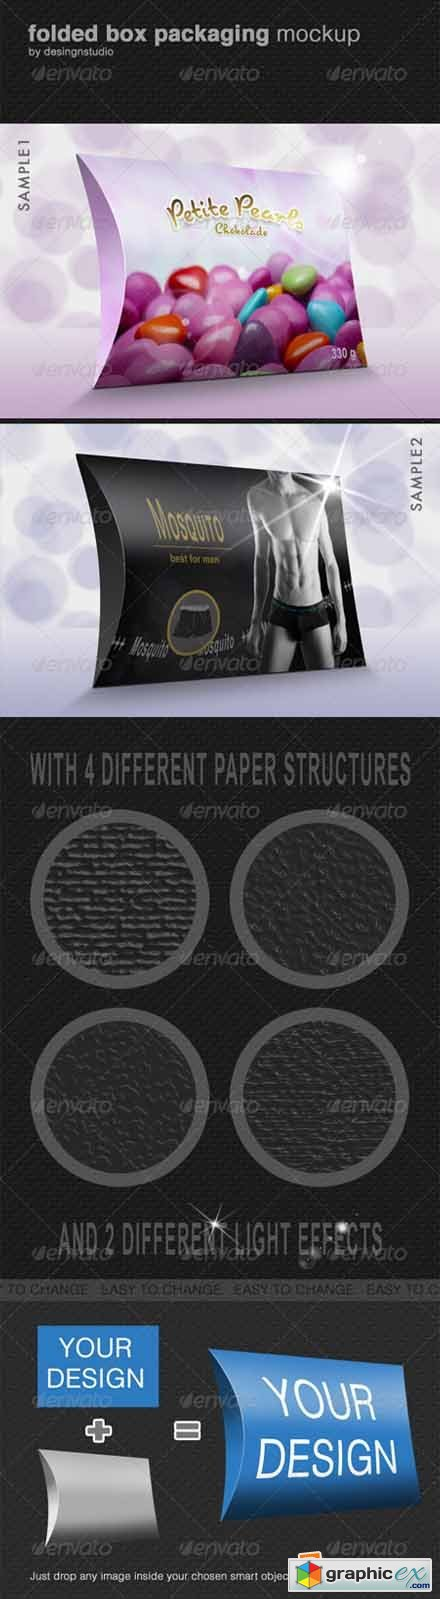 Folded Box Packaging Mock-Up 649244